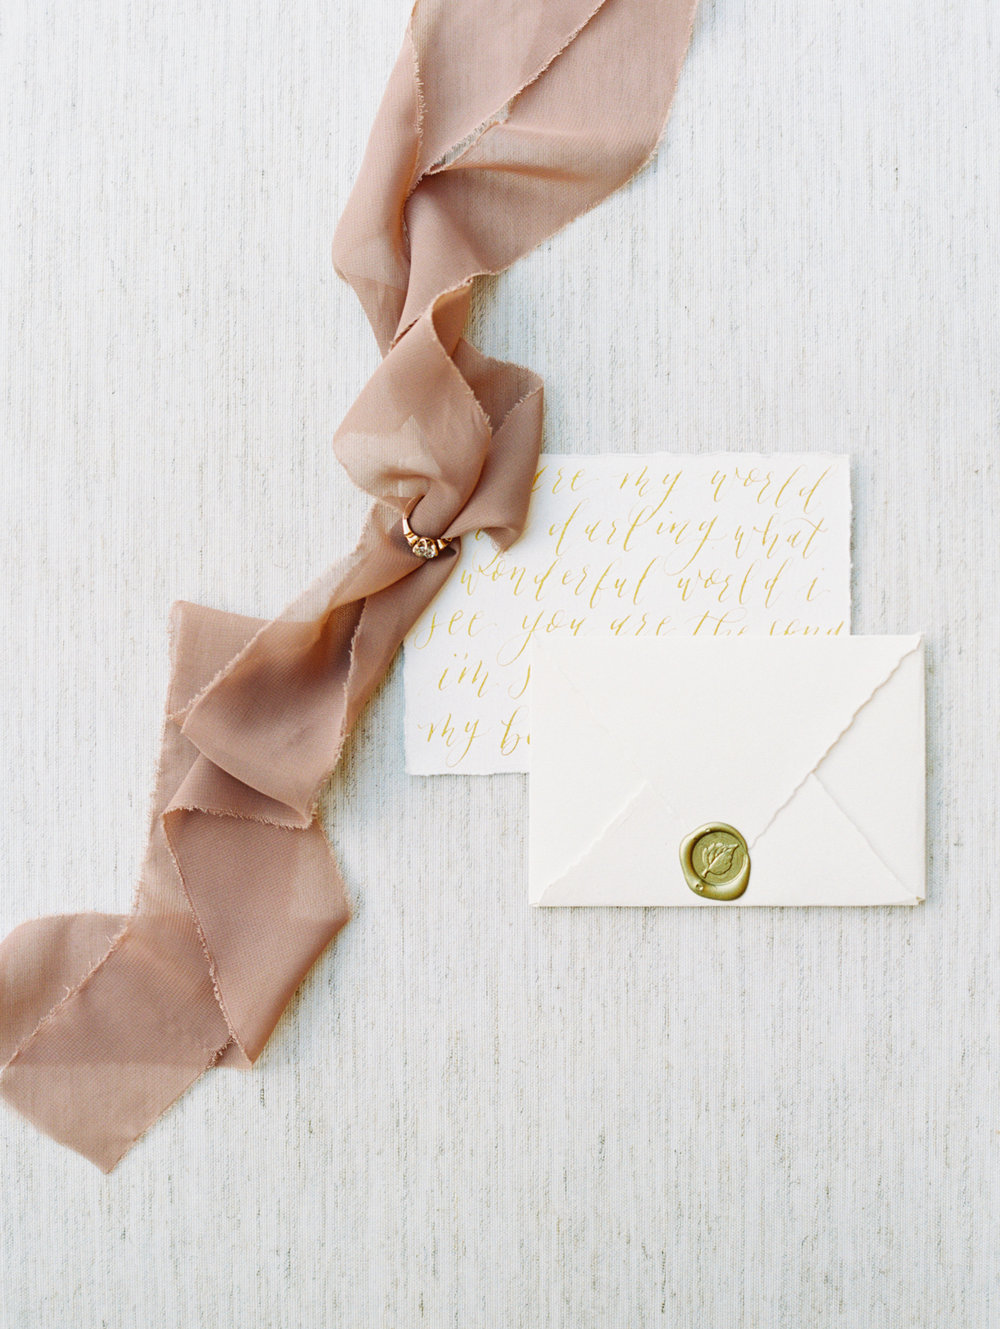 Seaside Bridal Inspiration  |  Bachelorette Tenley |  Pirouette Paper Company  |  Calligraphy Quotes  |  Mallory Dawn Photography